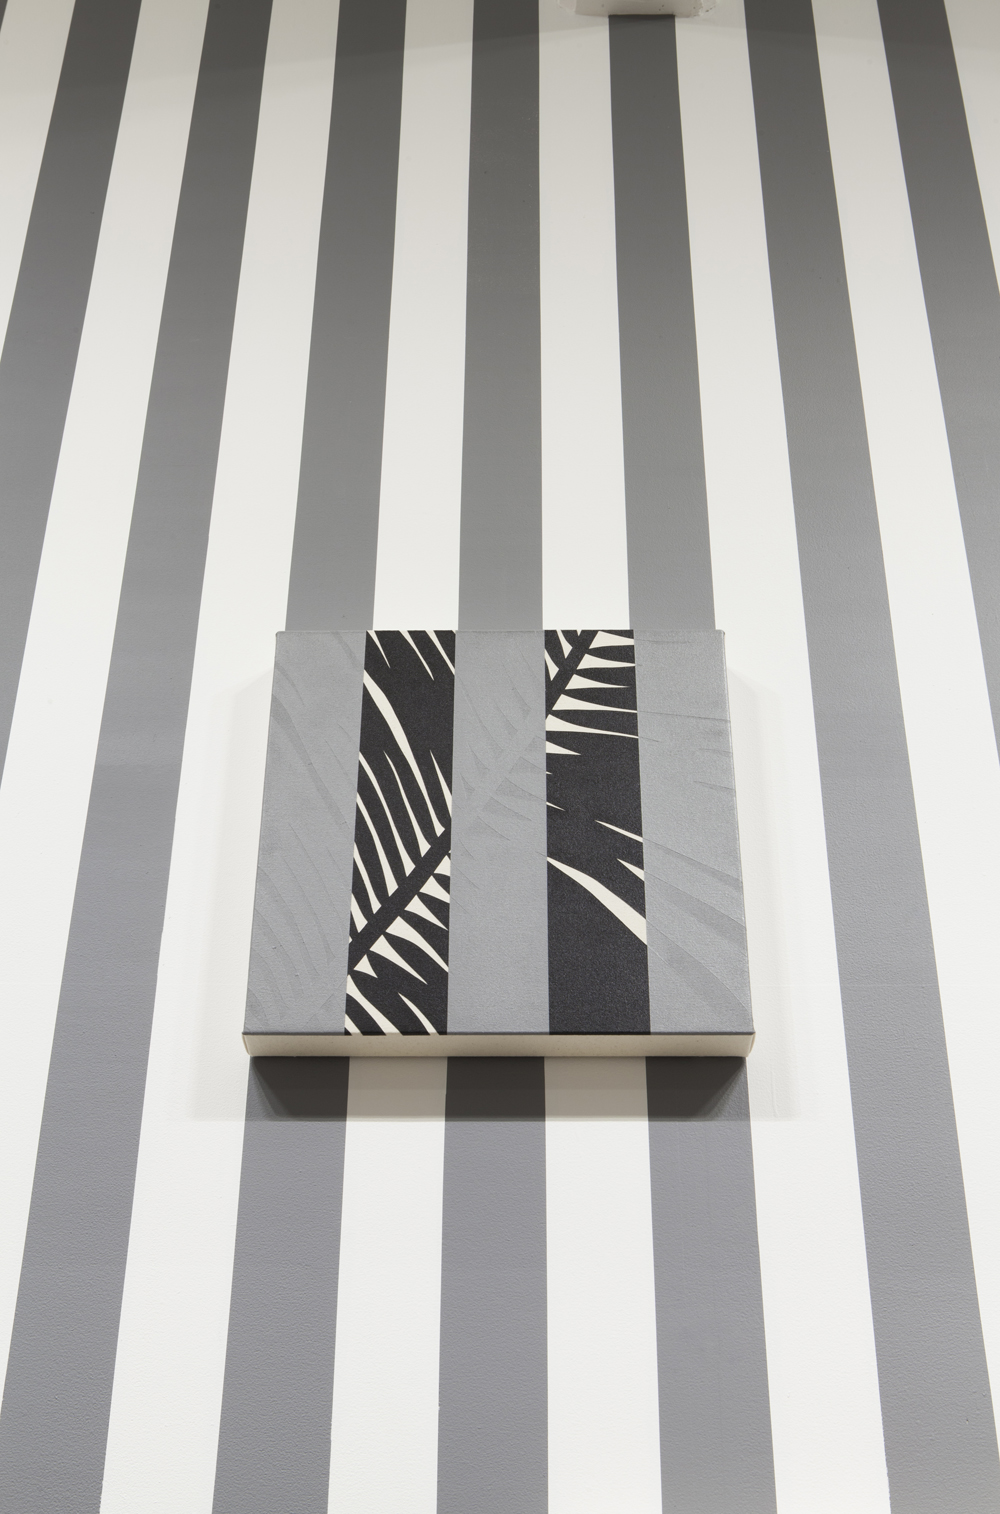 Otto Berchem, Tropical Buren, painting, conceptual painting, line painting, tropics, tropical plants, frieze stand prize,